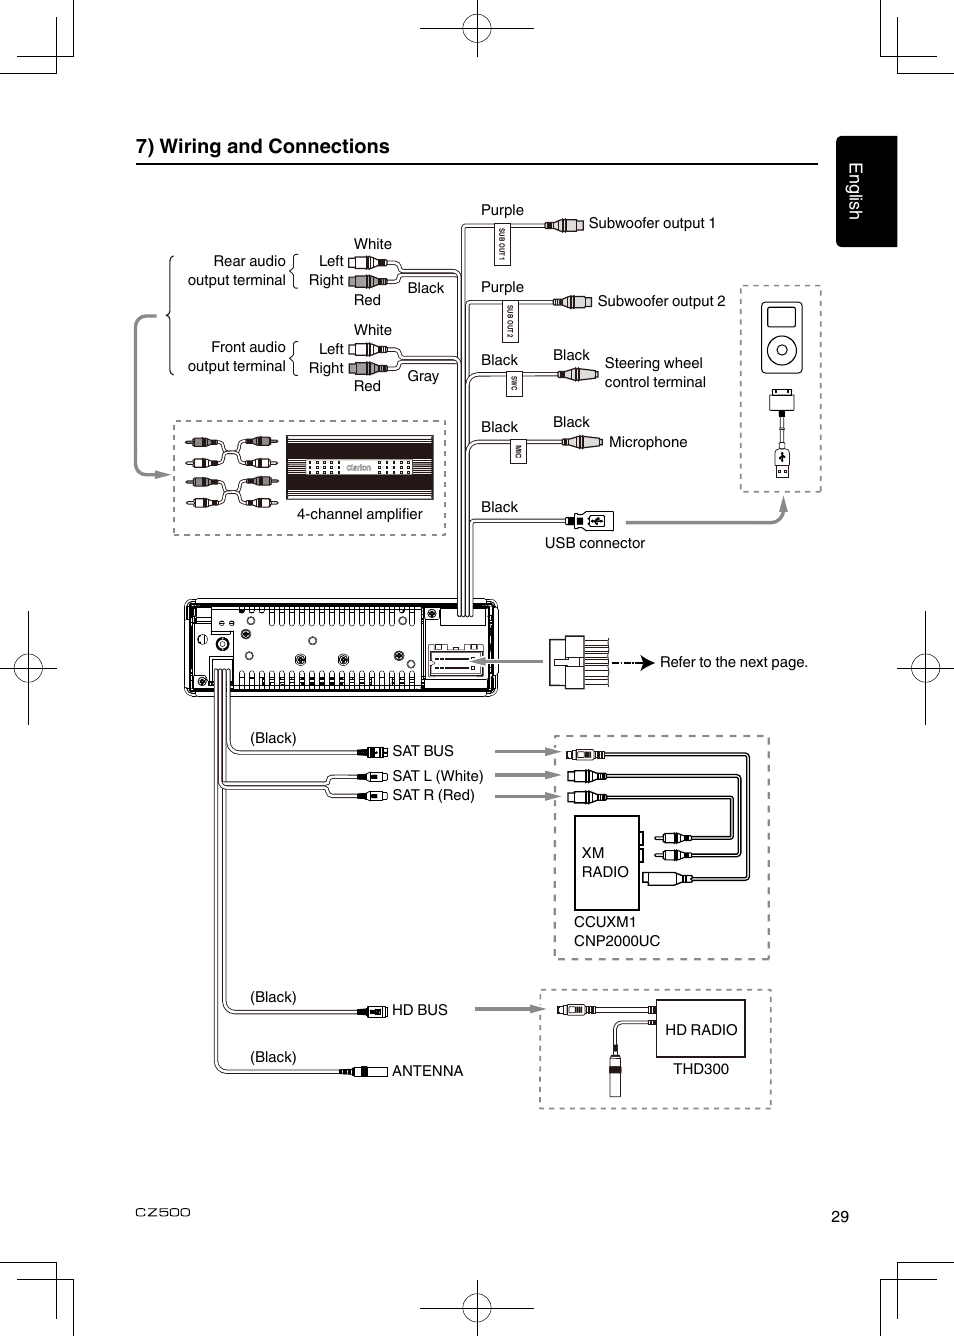 7) wiring and connections clarion cz500 user manual page 29 31 Clarion  CZ501 Faceplate Clarion